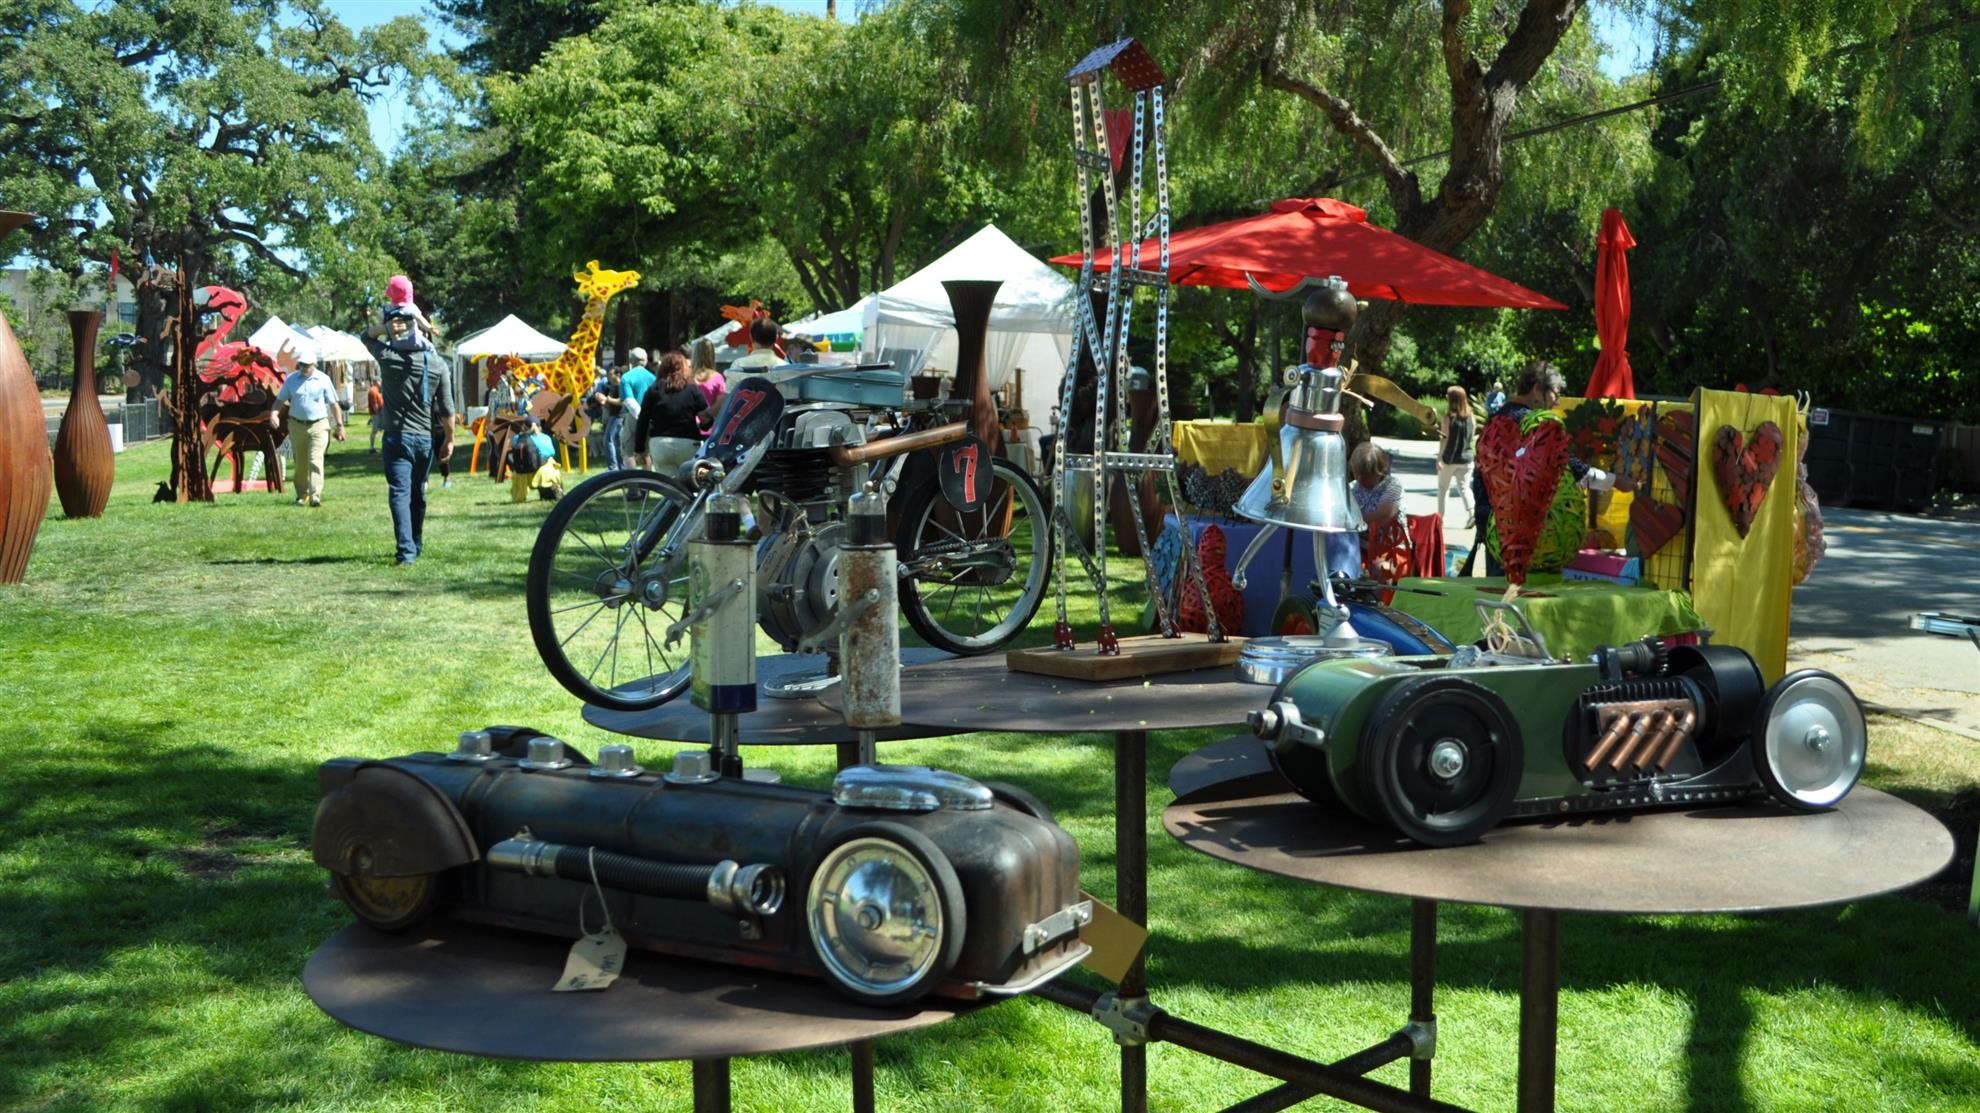 Fine Art in the Park to raise funds and build community